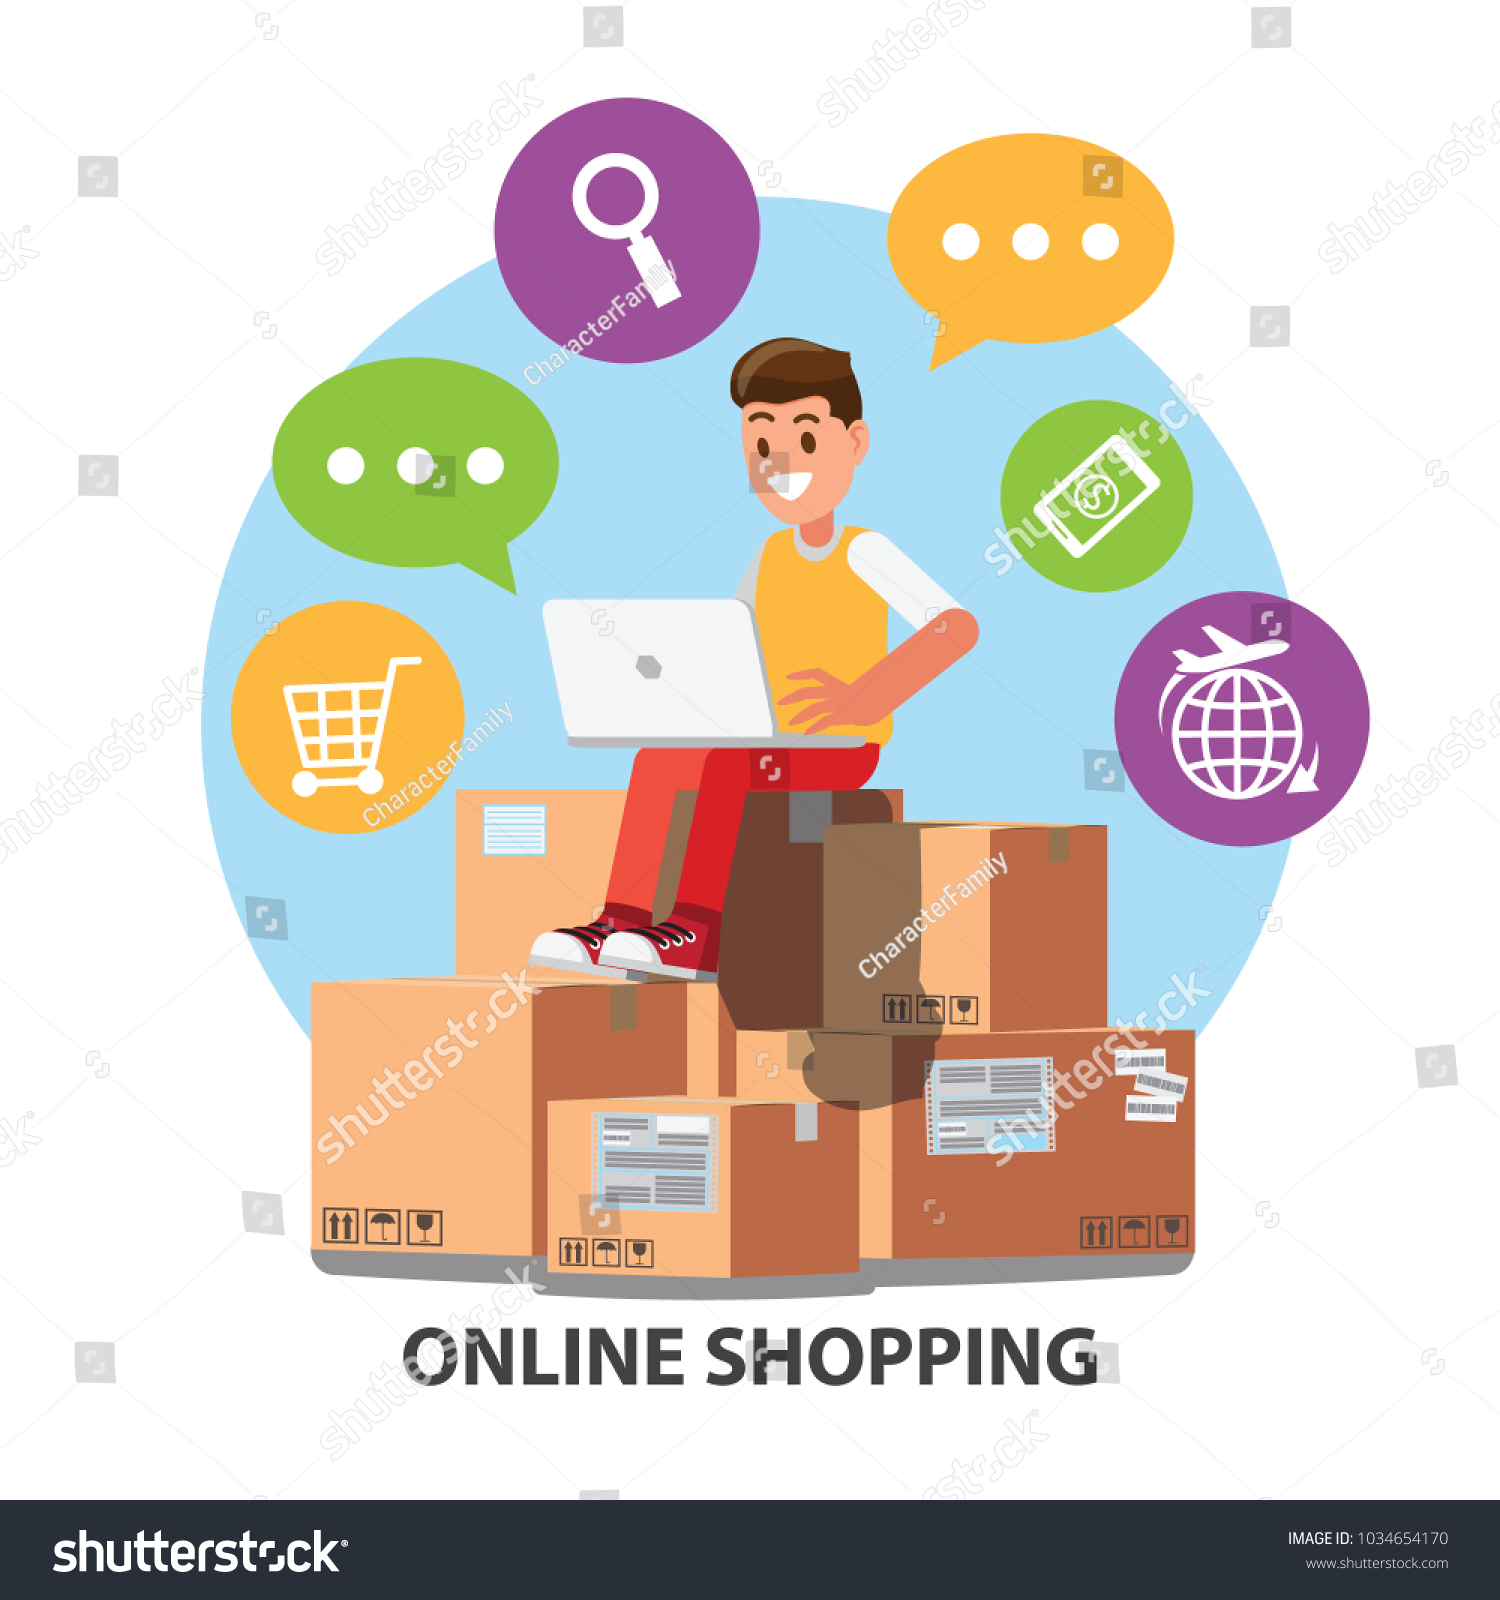 Businessman Character Design Ecommerce Online Shopping Stock Vector